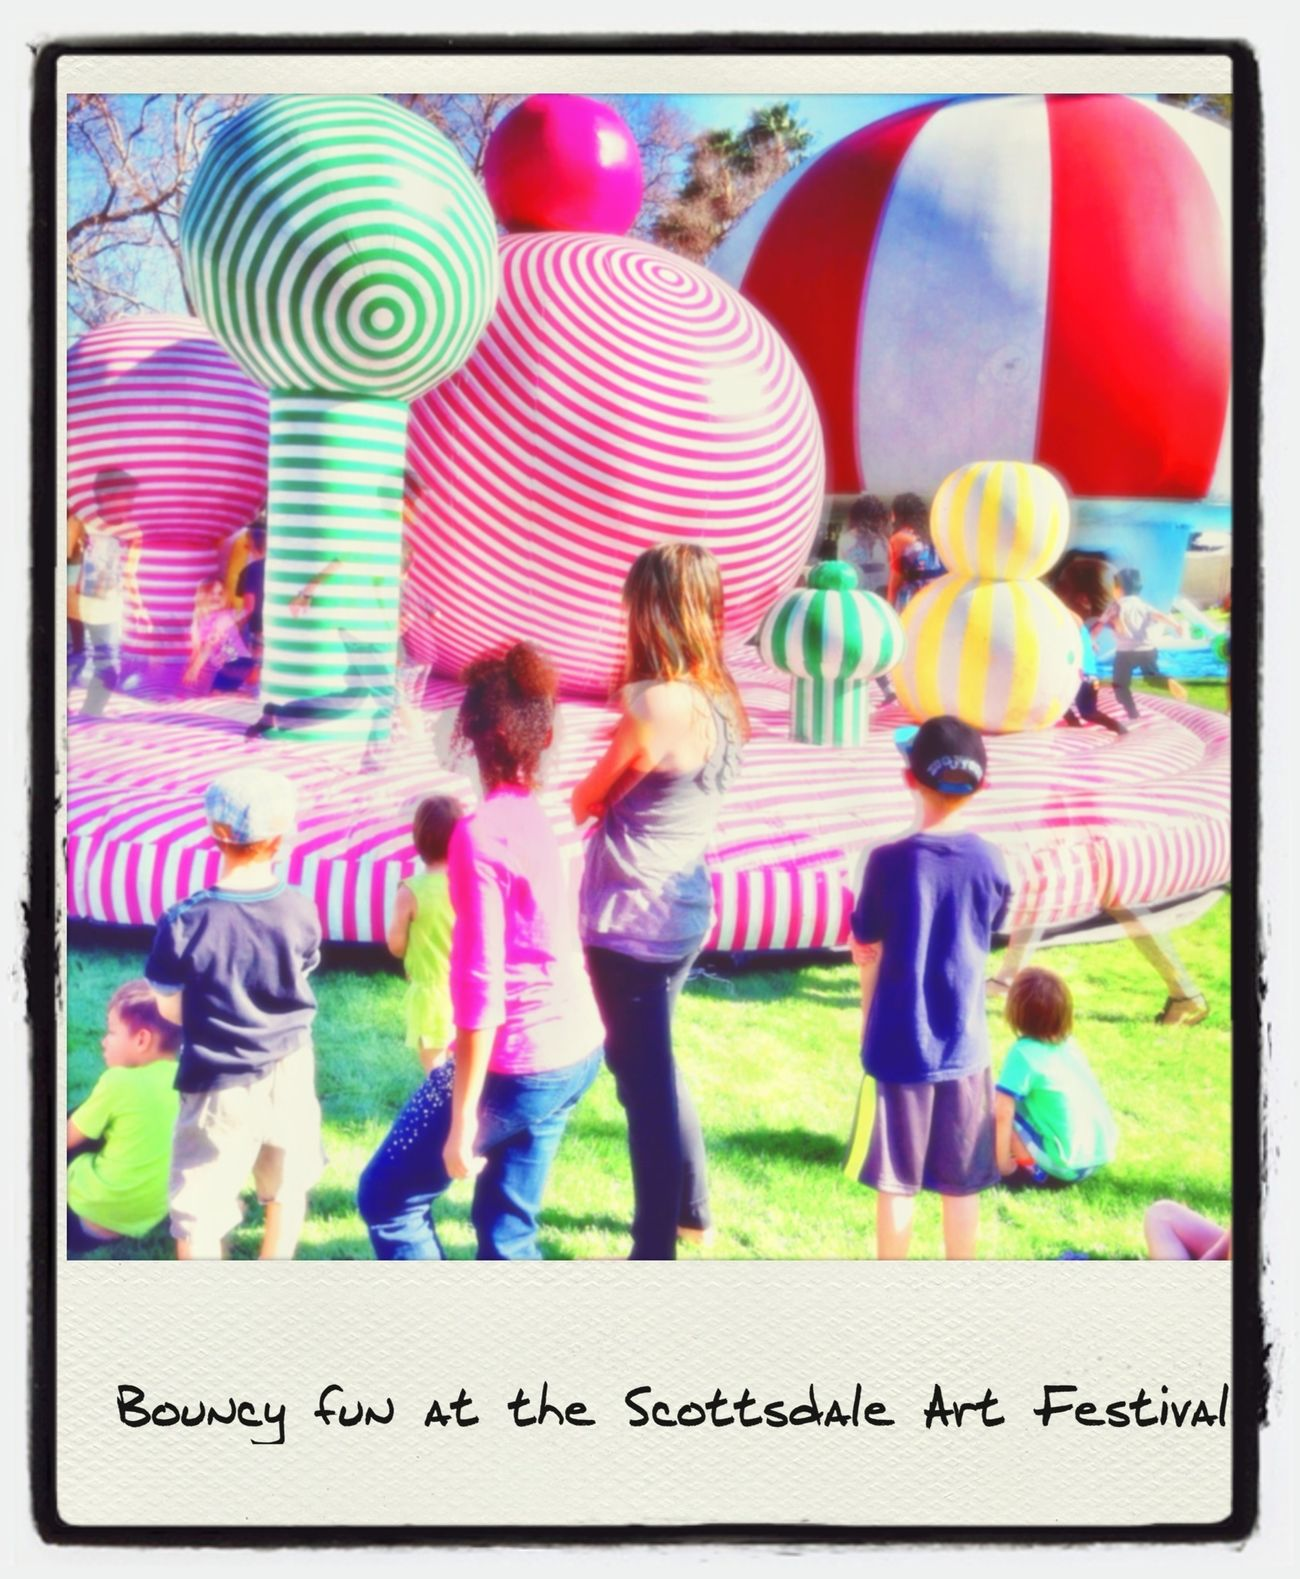 Great time at the Scottsdale Arts Festival with Scottsdale Public Art and Friendswithyou  IPhoneography